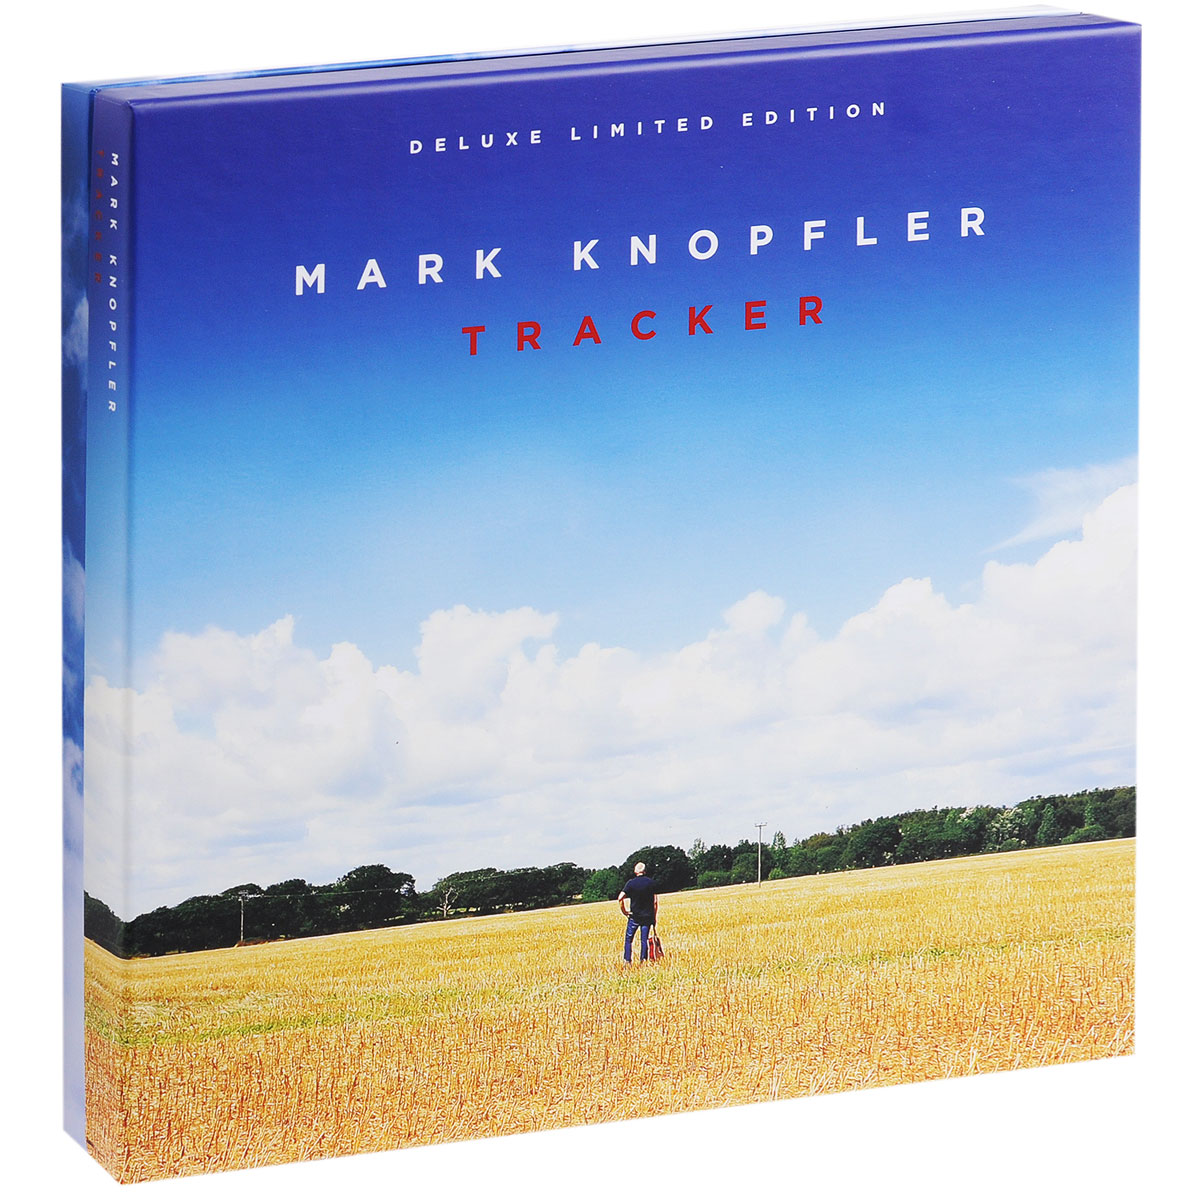 Марк Нопфлер Mark Knopfler. Tracker. Deluxe Limited Edition (2 CD + DVD + 2 LP) сумки gilda tonelli сумка